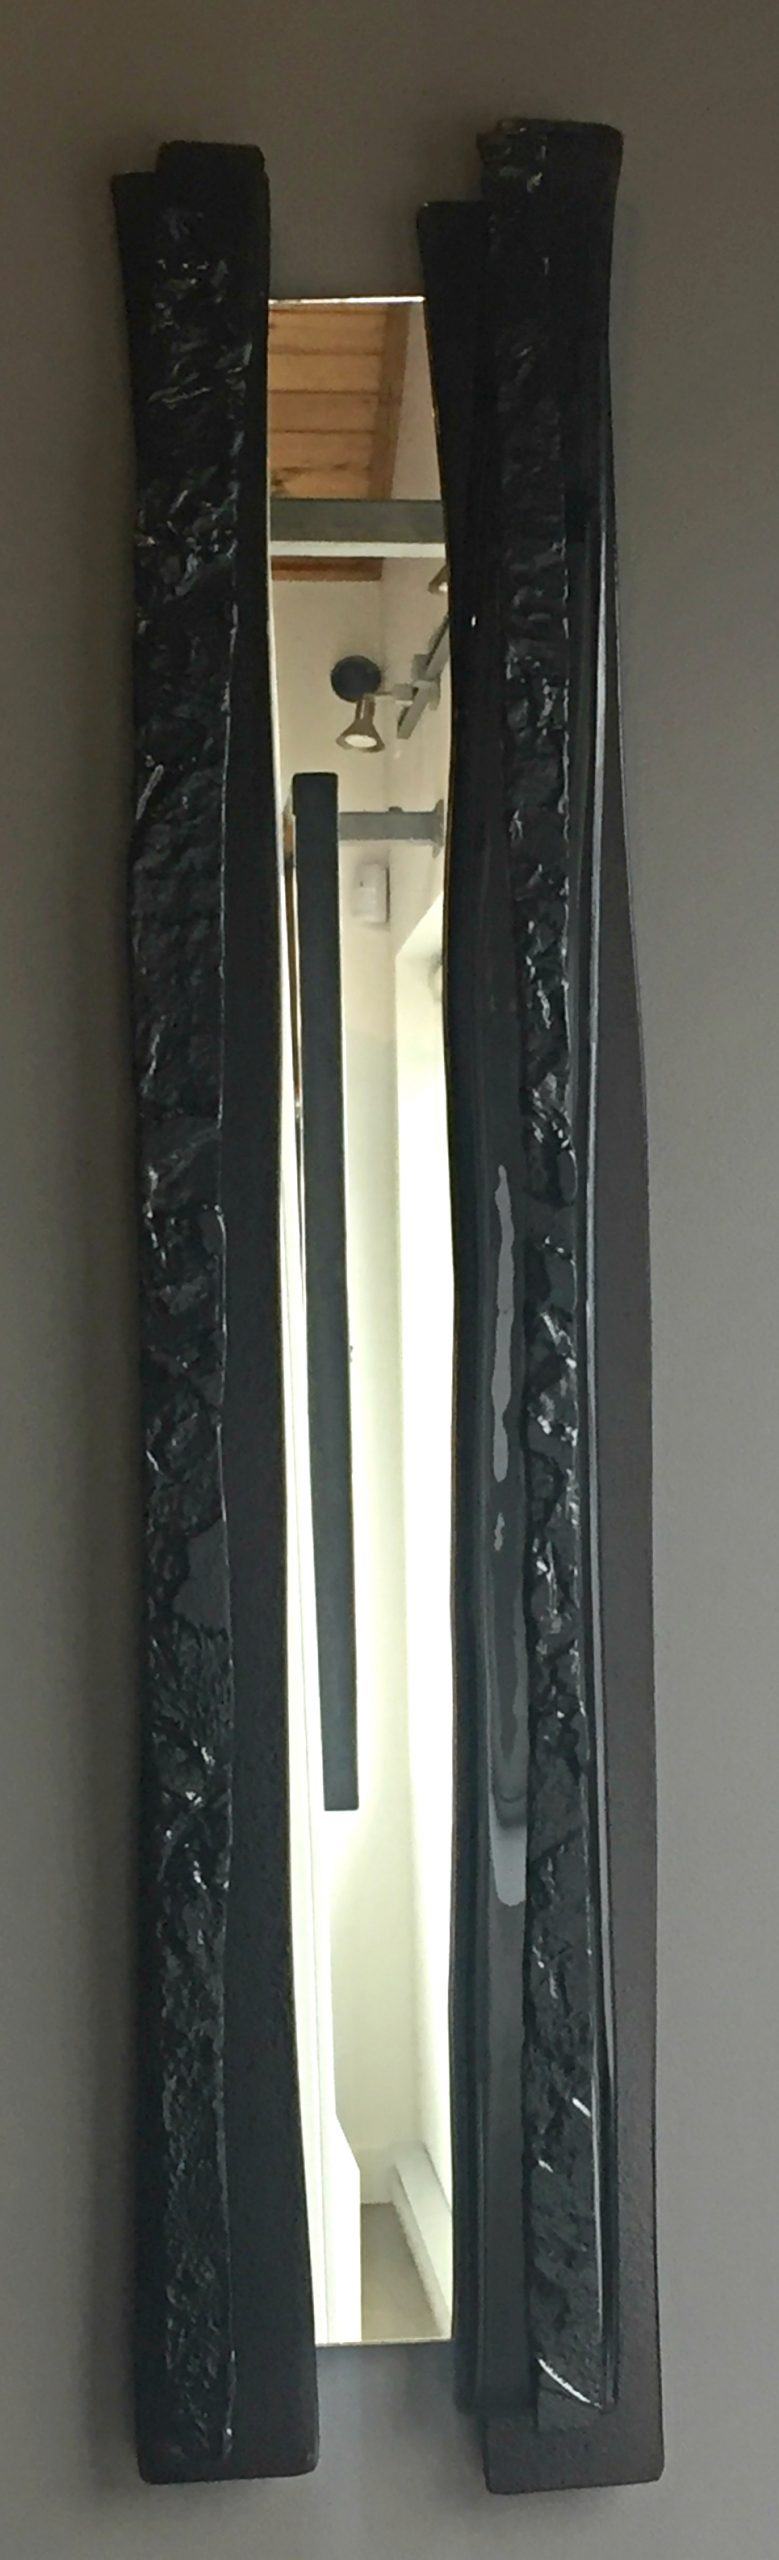 Reflections #4, cast glass mirror by Heather Cuell | Effusion Art Gallery + Cast Glass Studio, Invermere BC